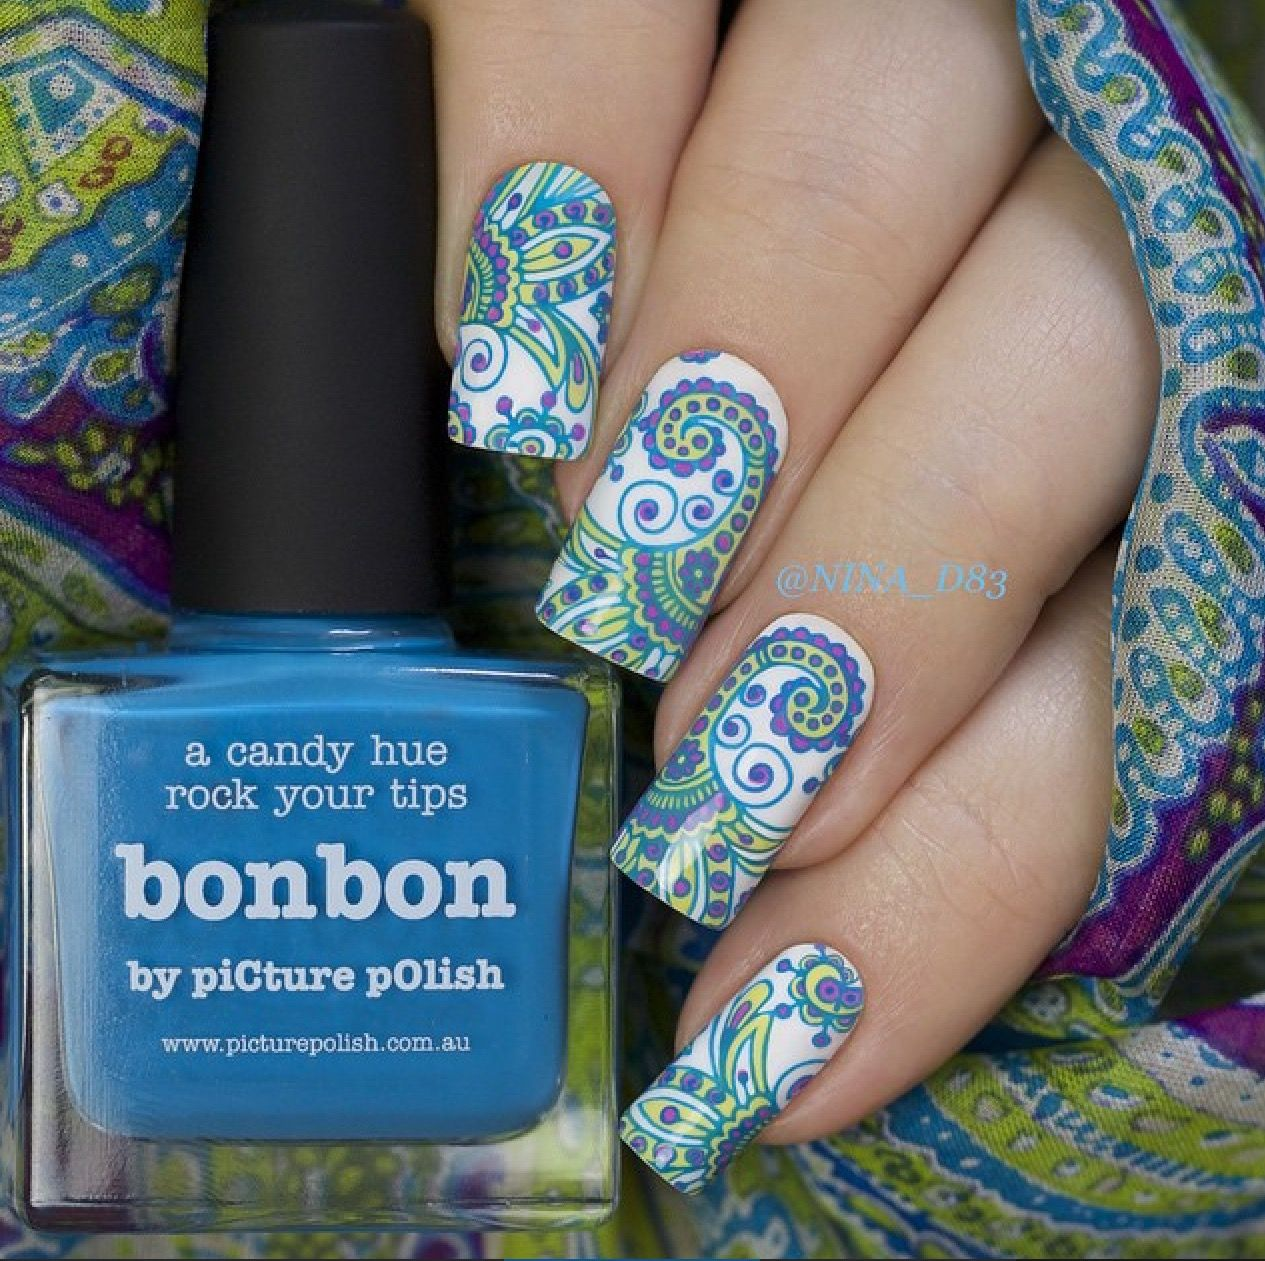 piCture pOlish = Nina wearing 'BonBon, Dream, Sorbet + Bright White LOVE thanks! www.picturepolish.com.au